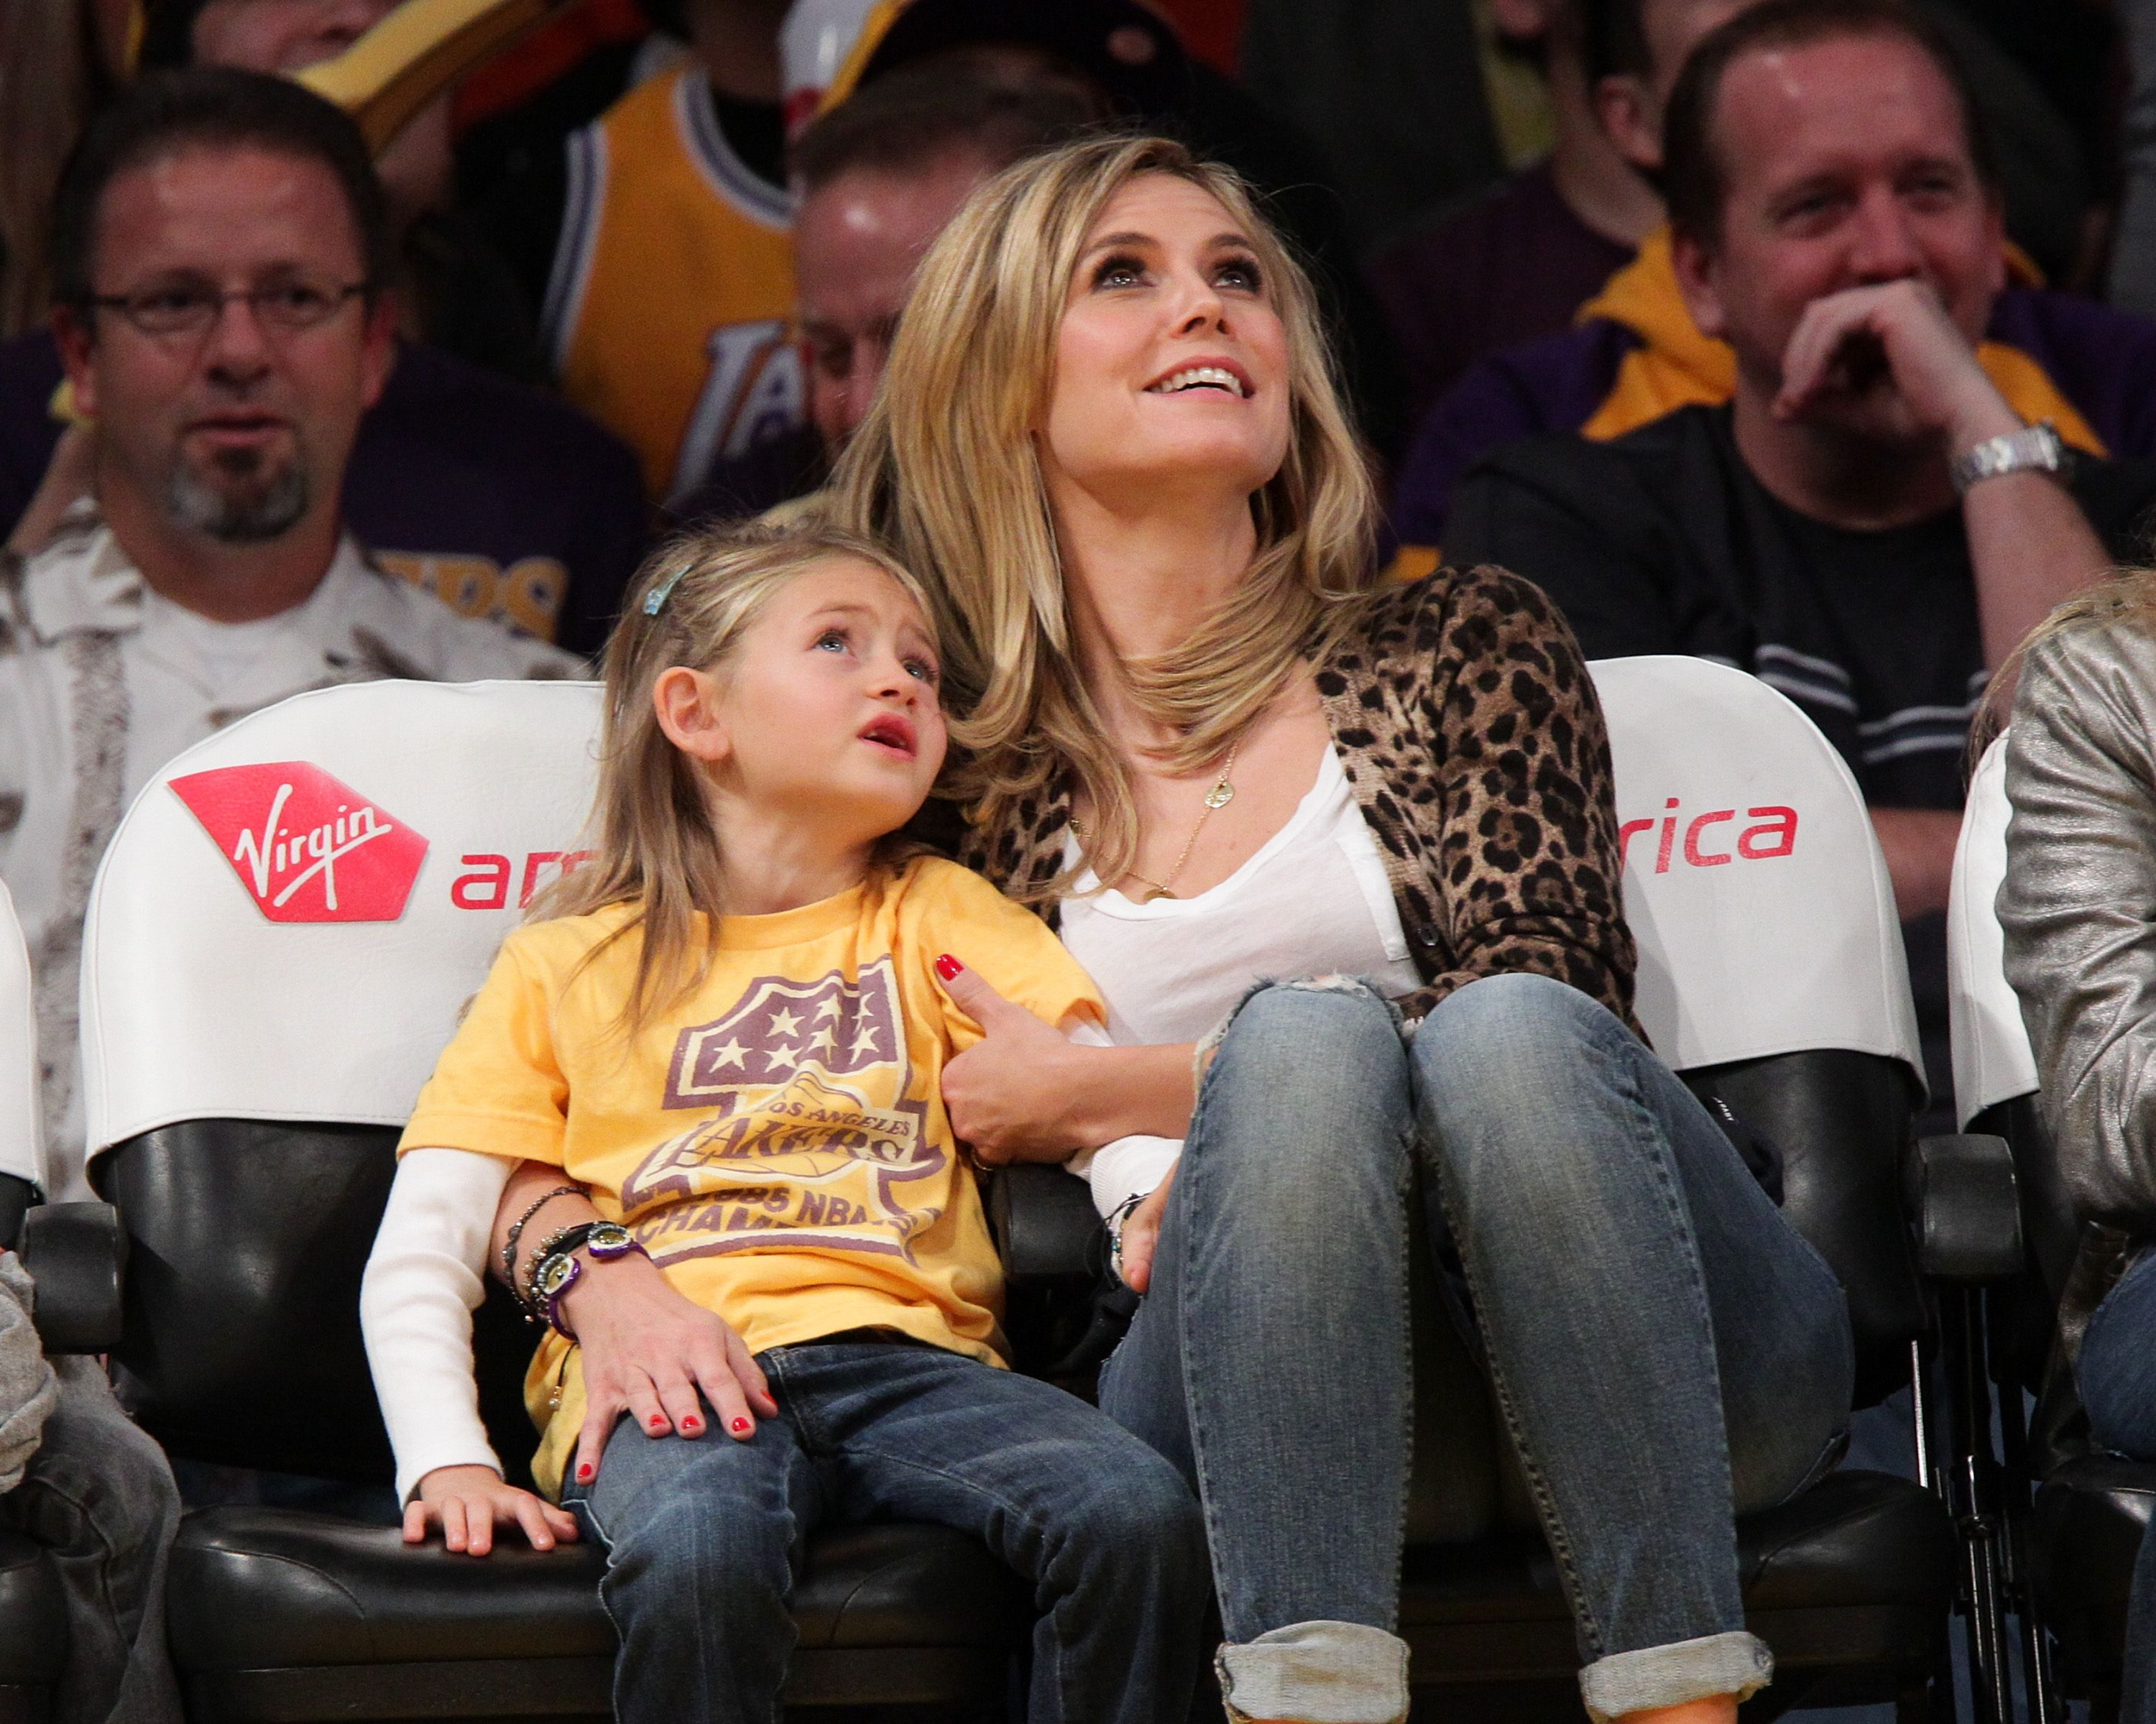 Heidi Klum and her daughter Leni Samuel at a game at Staples Center on January 7, 2011, in Los Angeles, California   Photo: Noel Vasquez/Getty Images